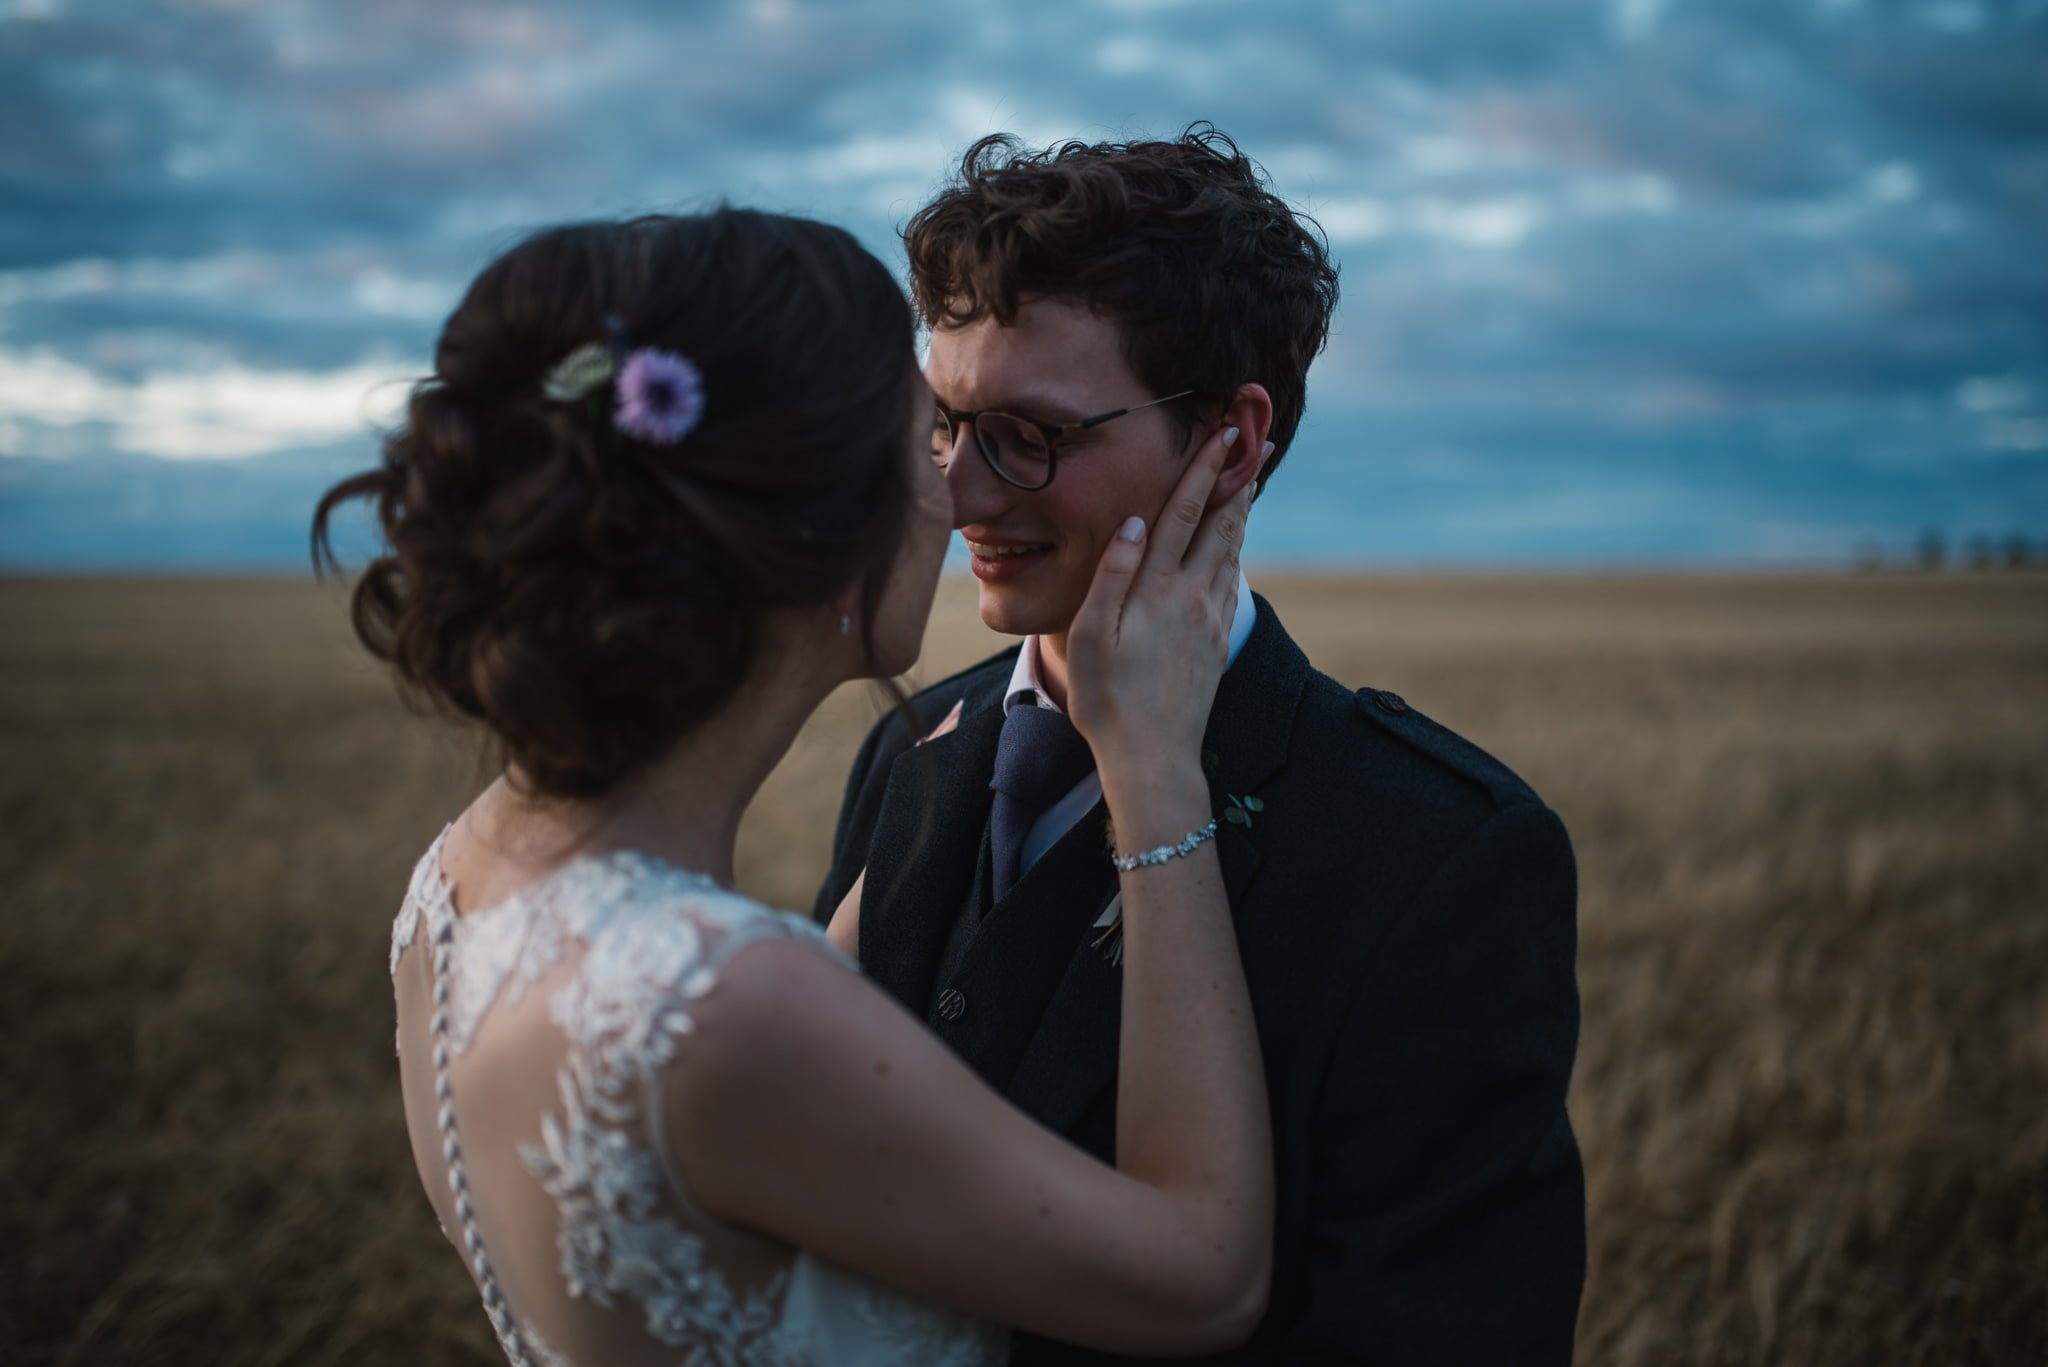 couple in a barley field about to kiss